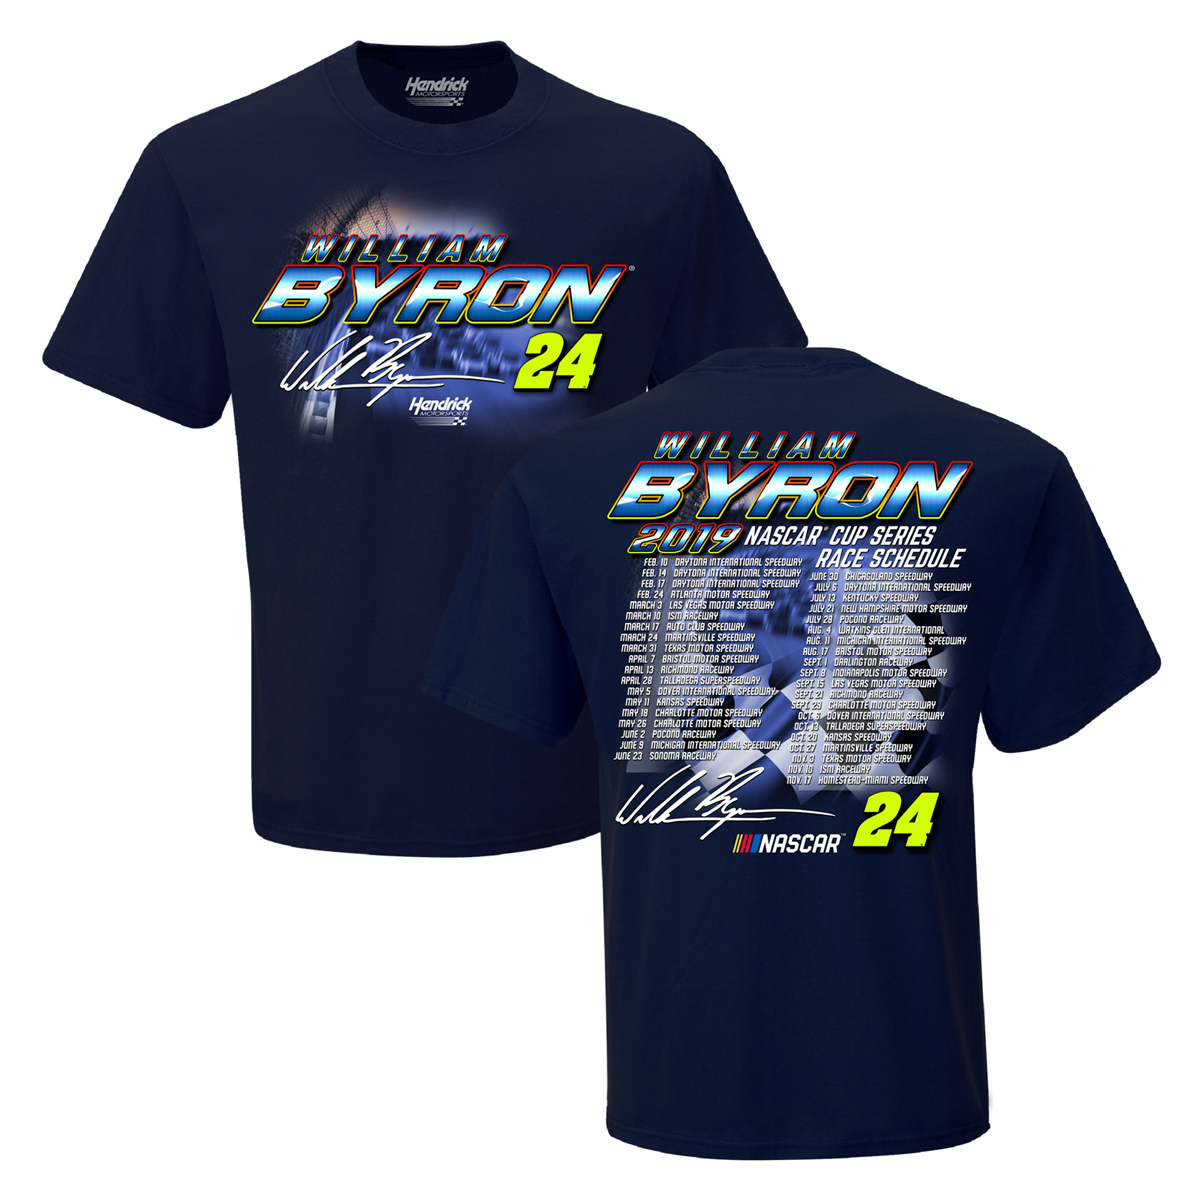 William Byron #24 2019 NASCAR Schedule T-shirt